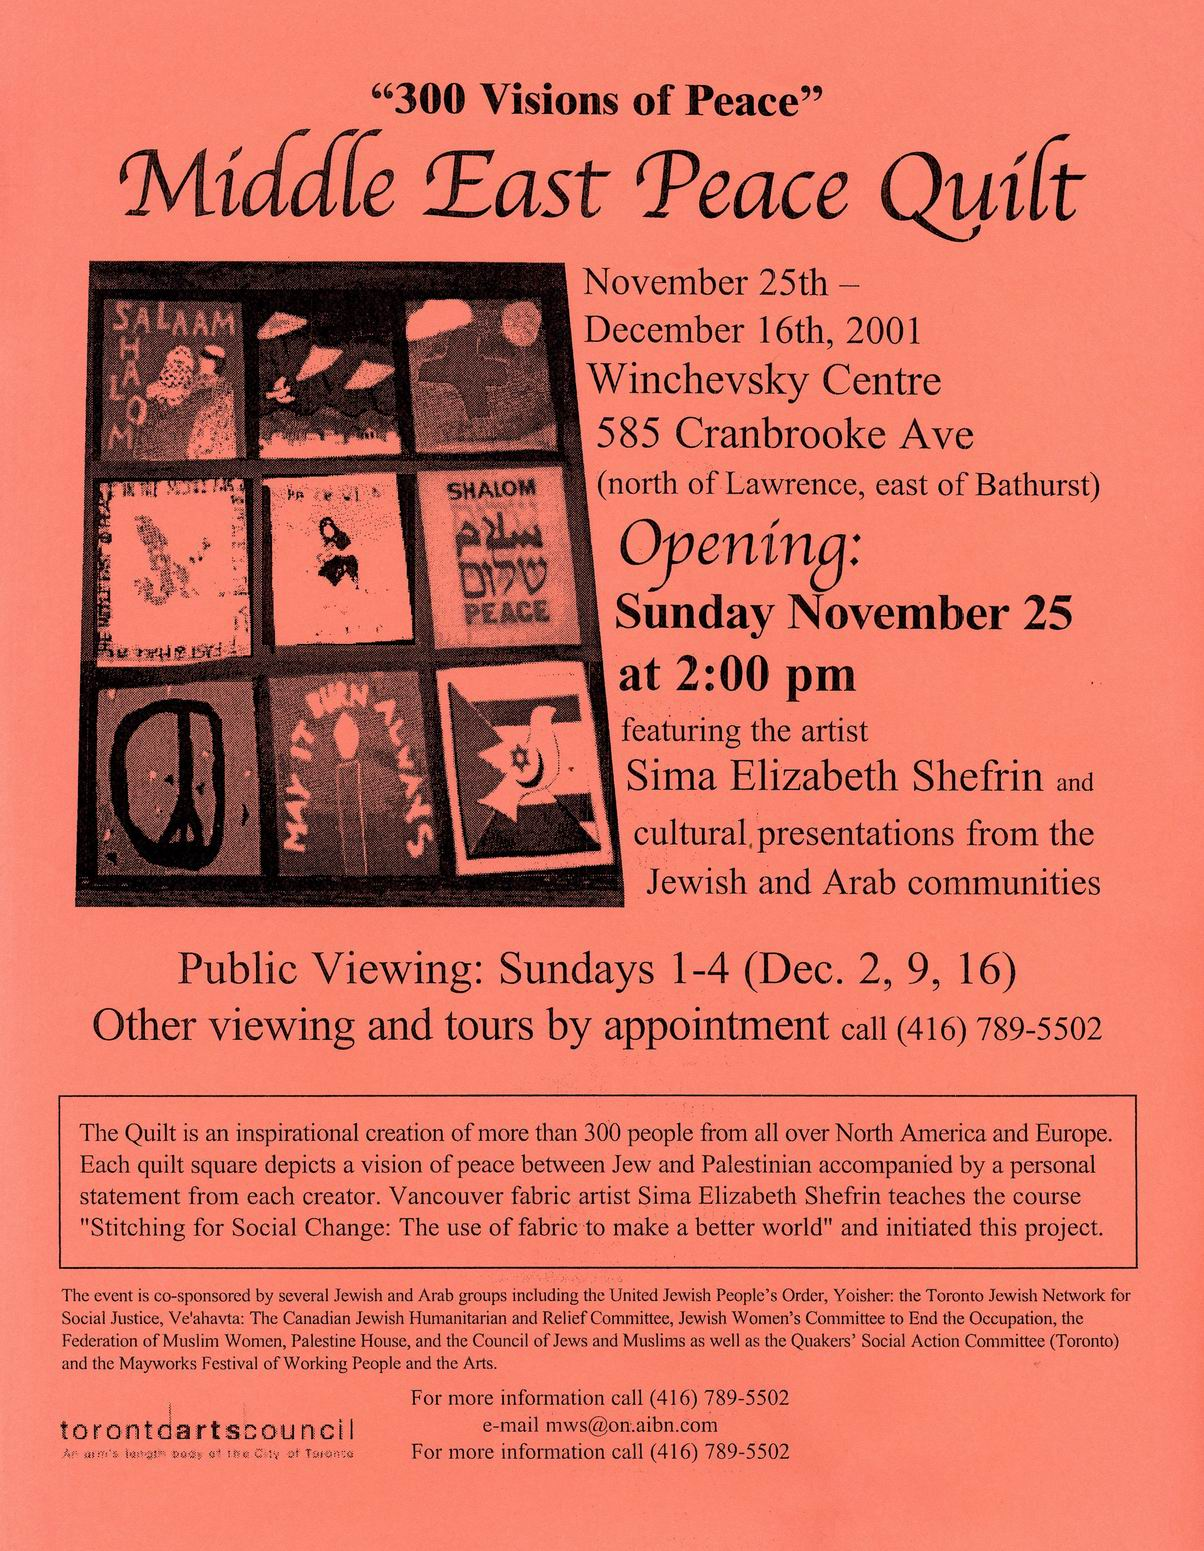 Middle East Peace Quilt